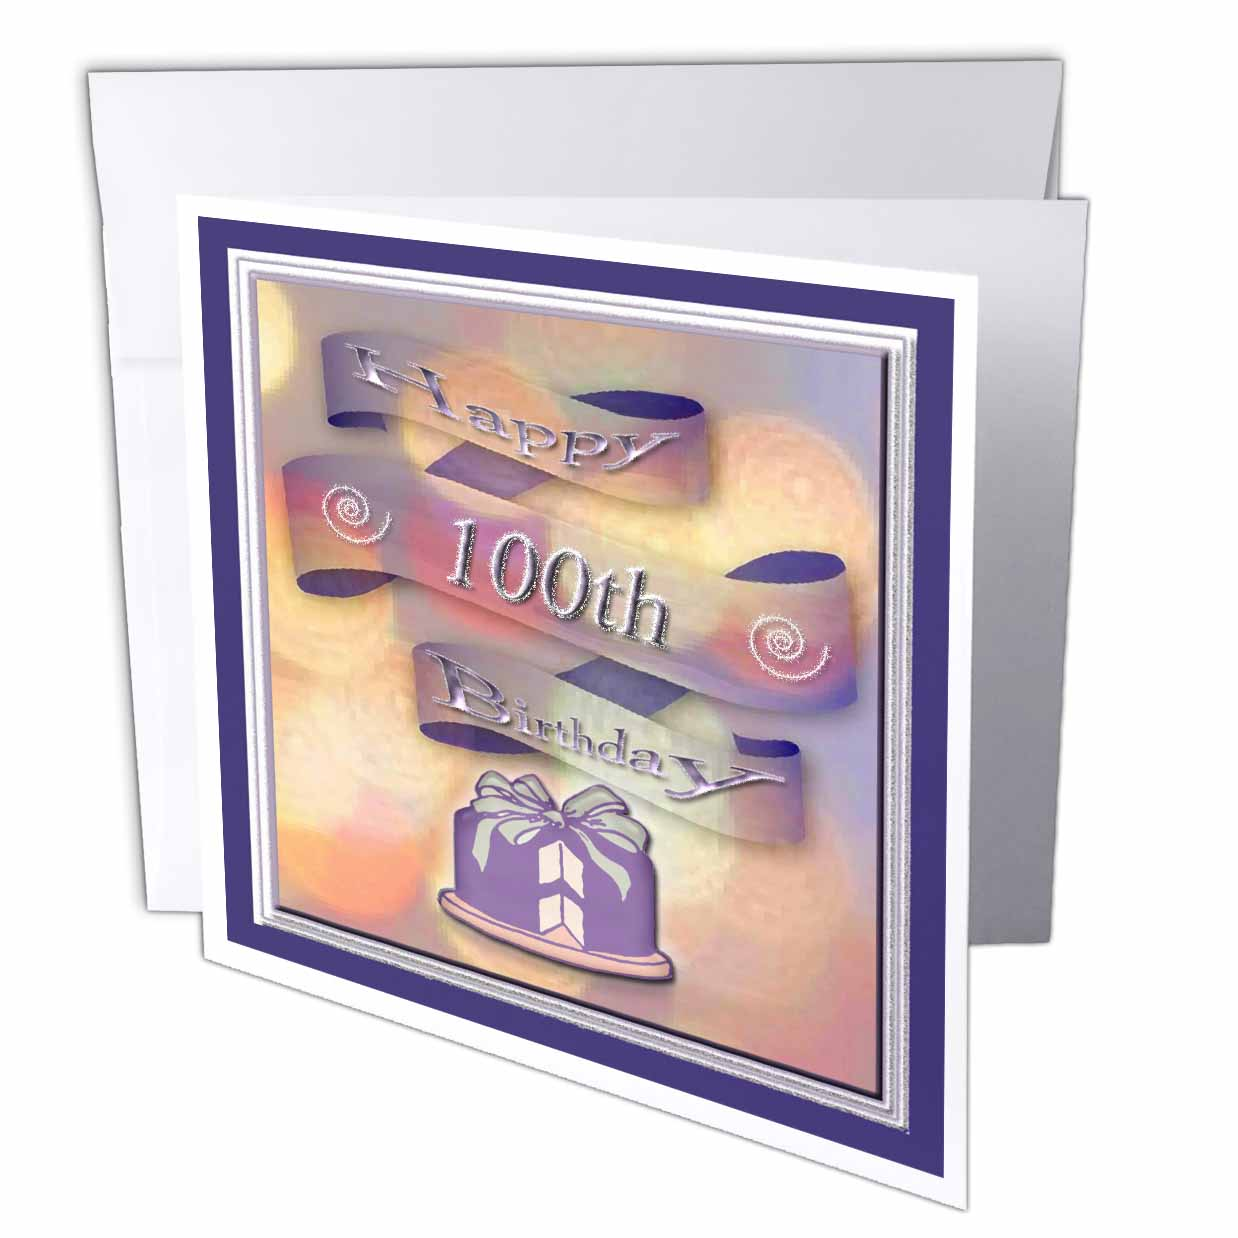 3dRose Ribbon and Cake Happy 100th Birthday, Greeting Cards, 6 x 6 inches, set of 12